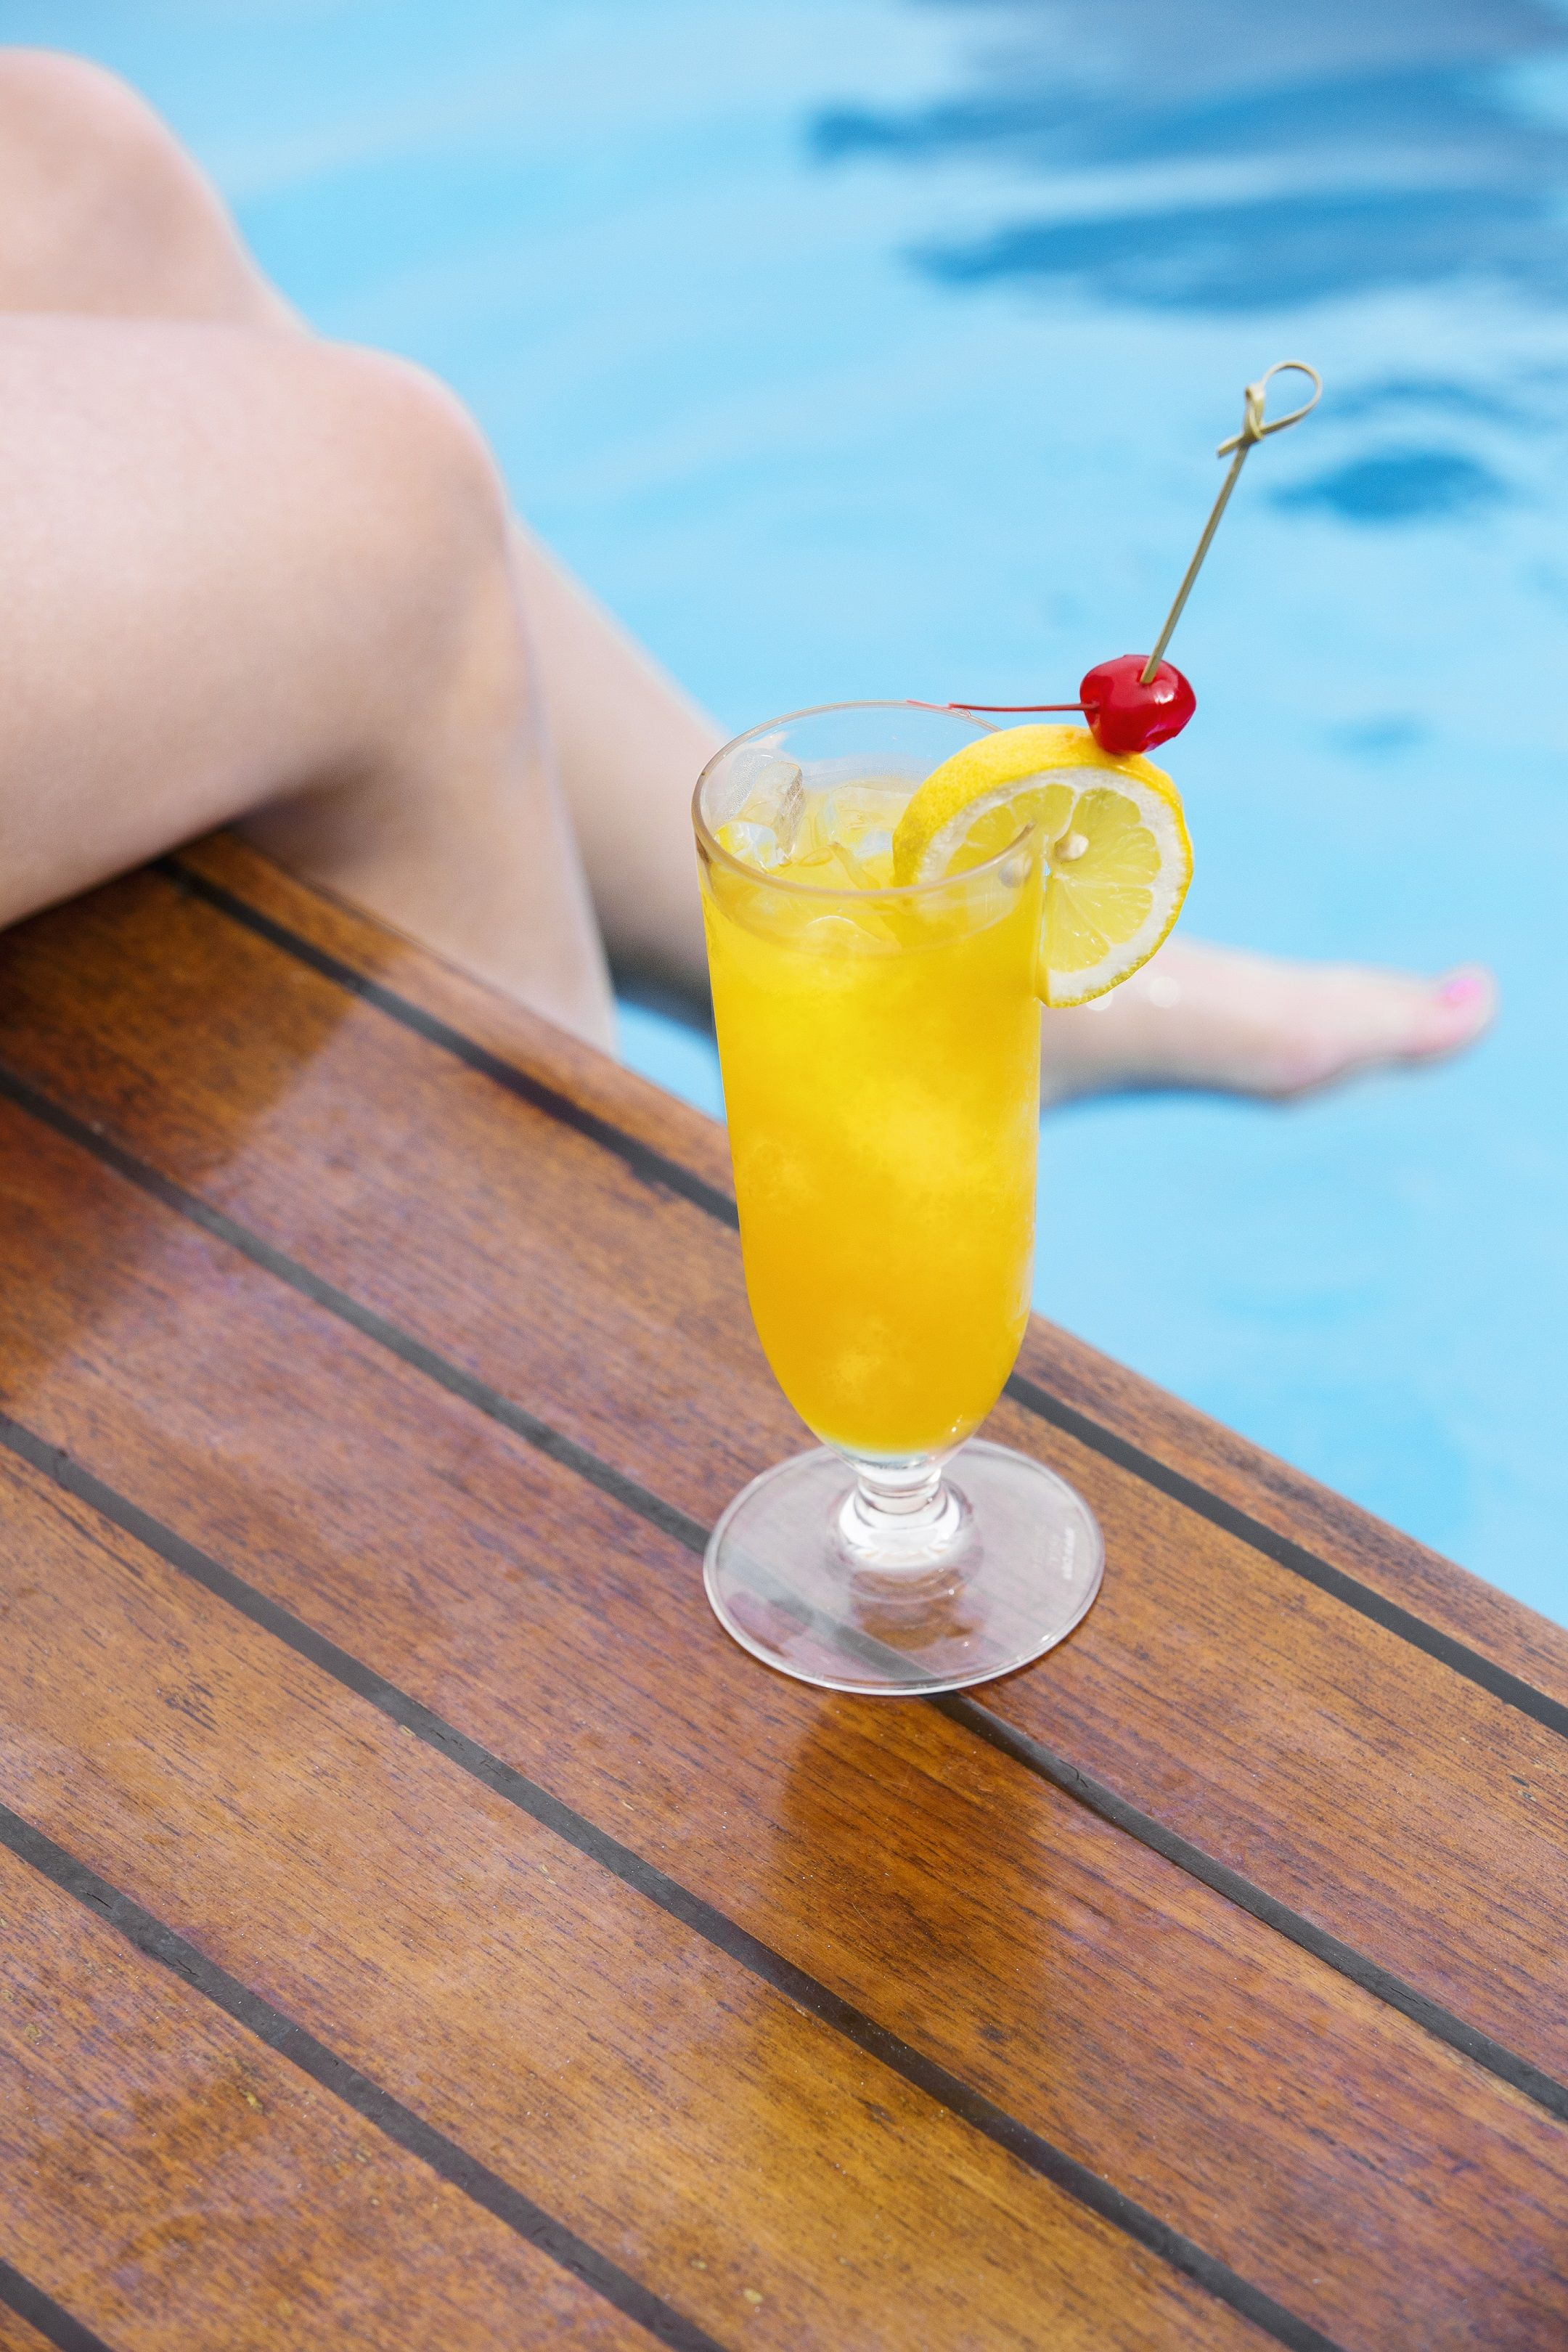 Cruising and cocktails go hand in hand.